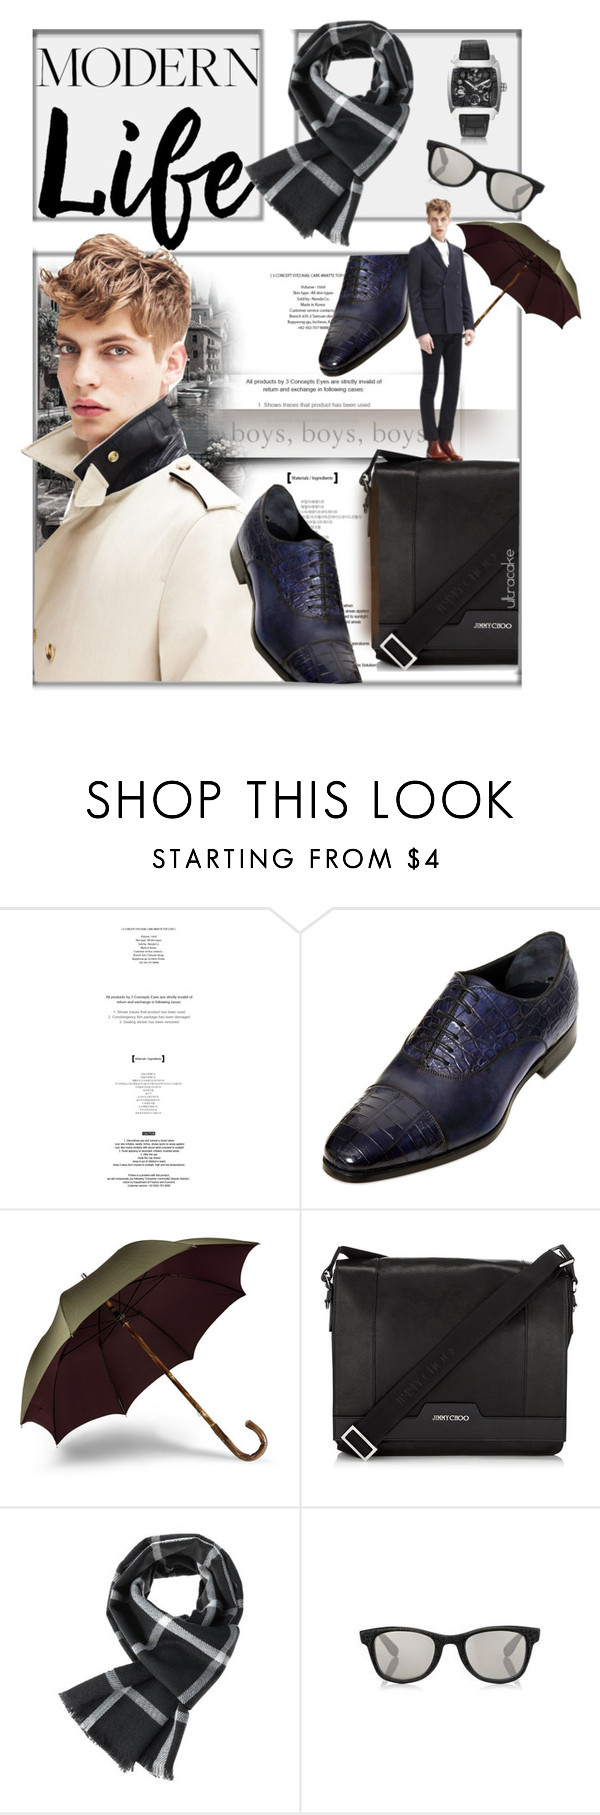 """""""Modern Life"""" by ultracake ❤ liked on Polyvore featuring DAMI, Sandro, Jimmy Choo, TheLees, Tag Heuer, modern, women's clothing, women's fashion, women and female"""